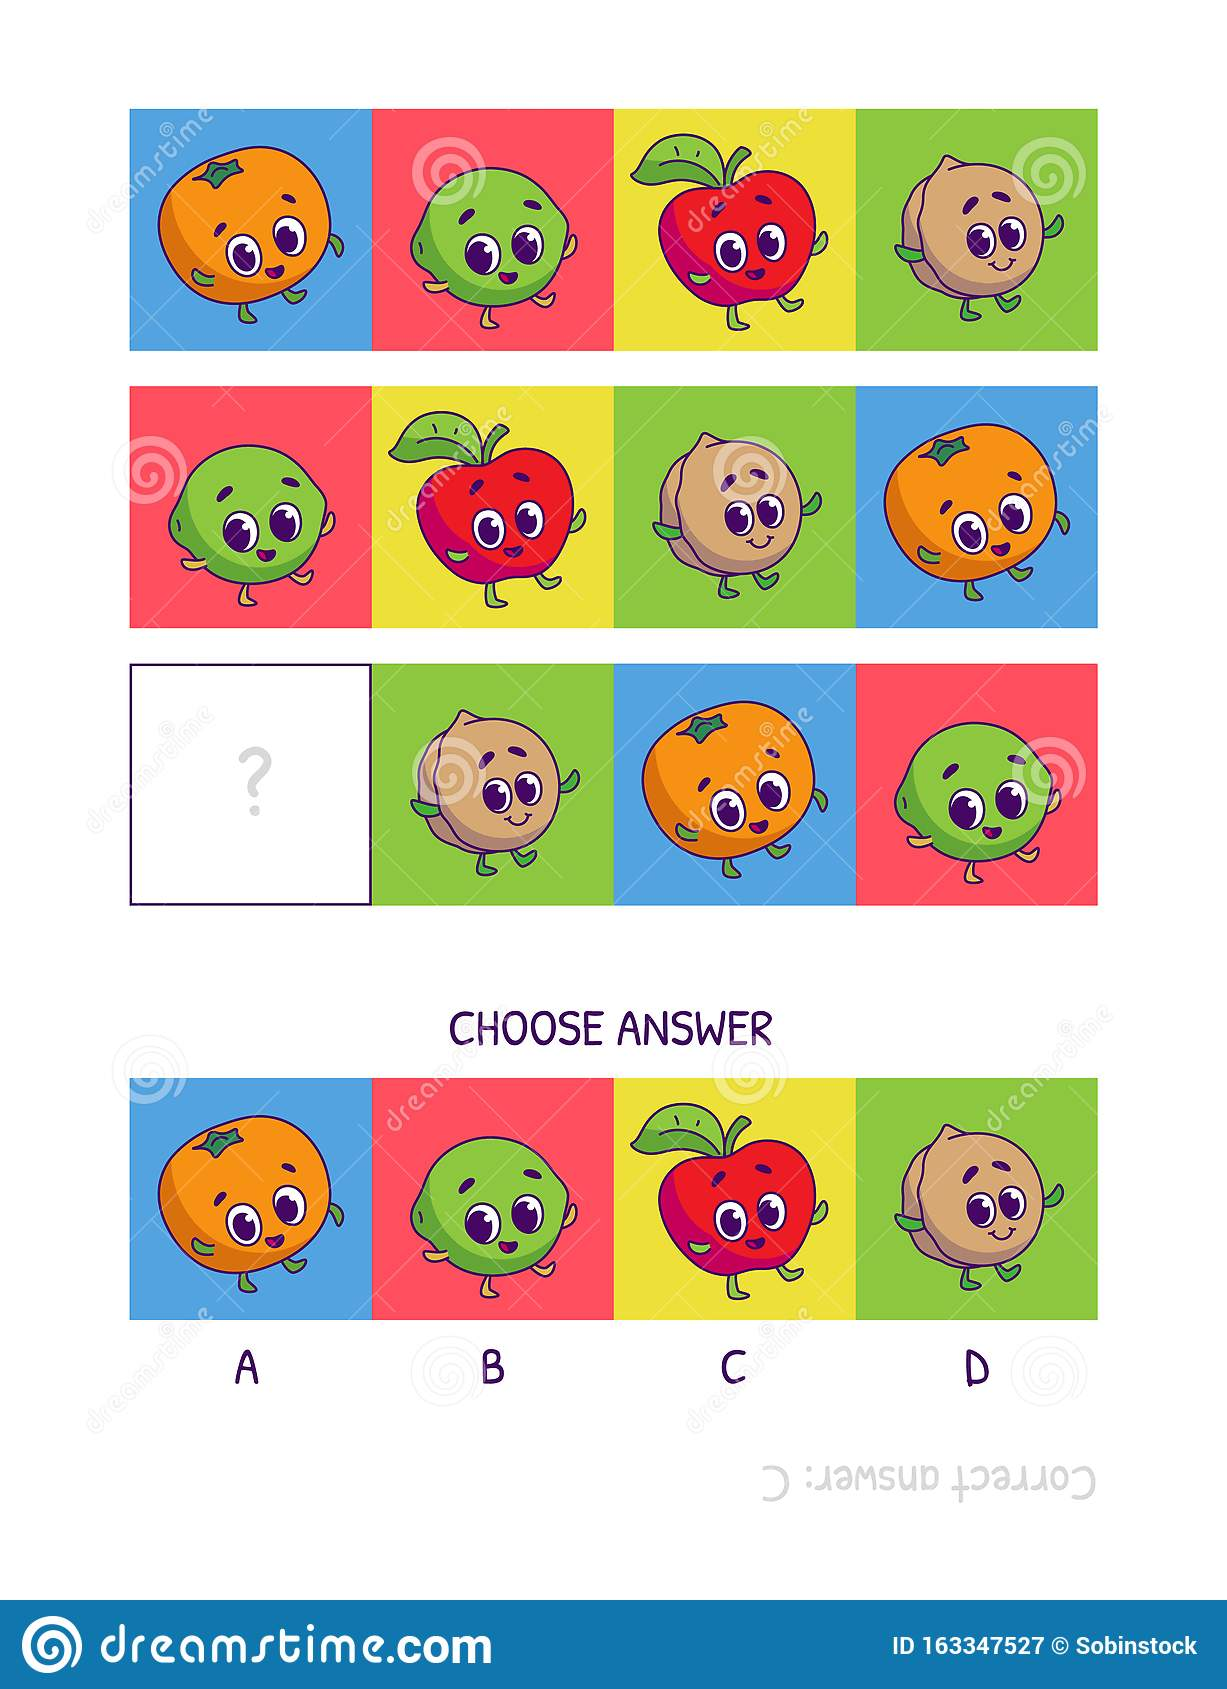 Cute Tangerine Lime Red Apple Walnut Logic Game For